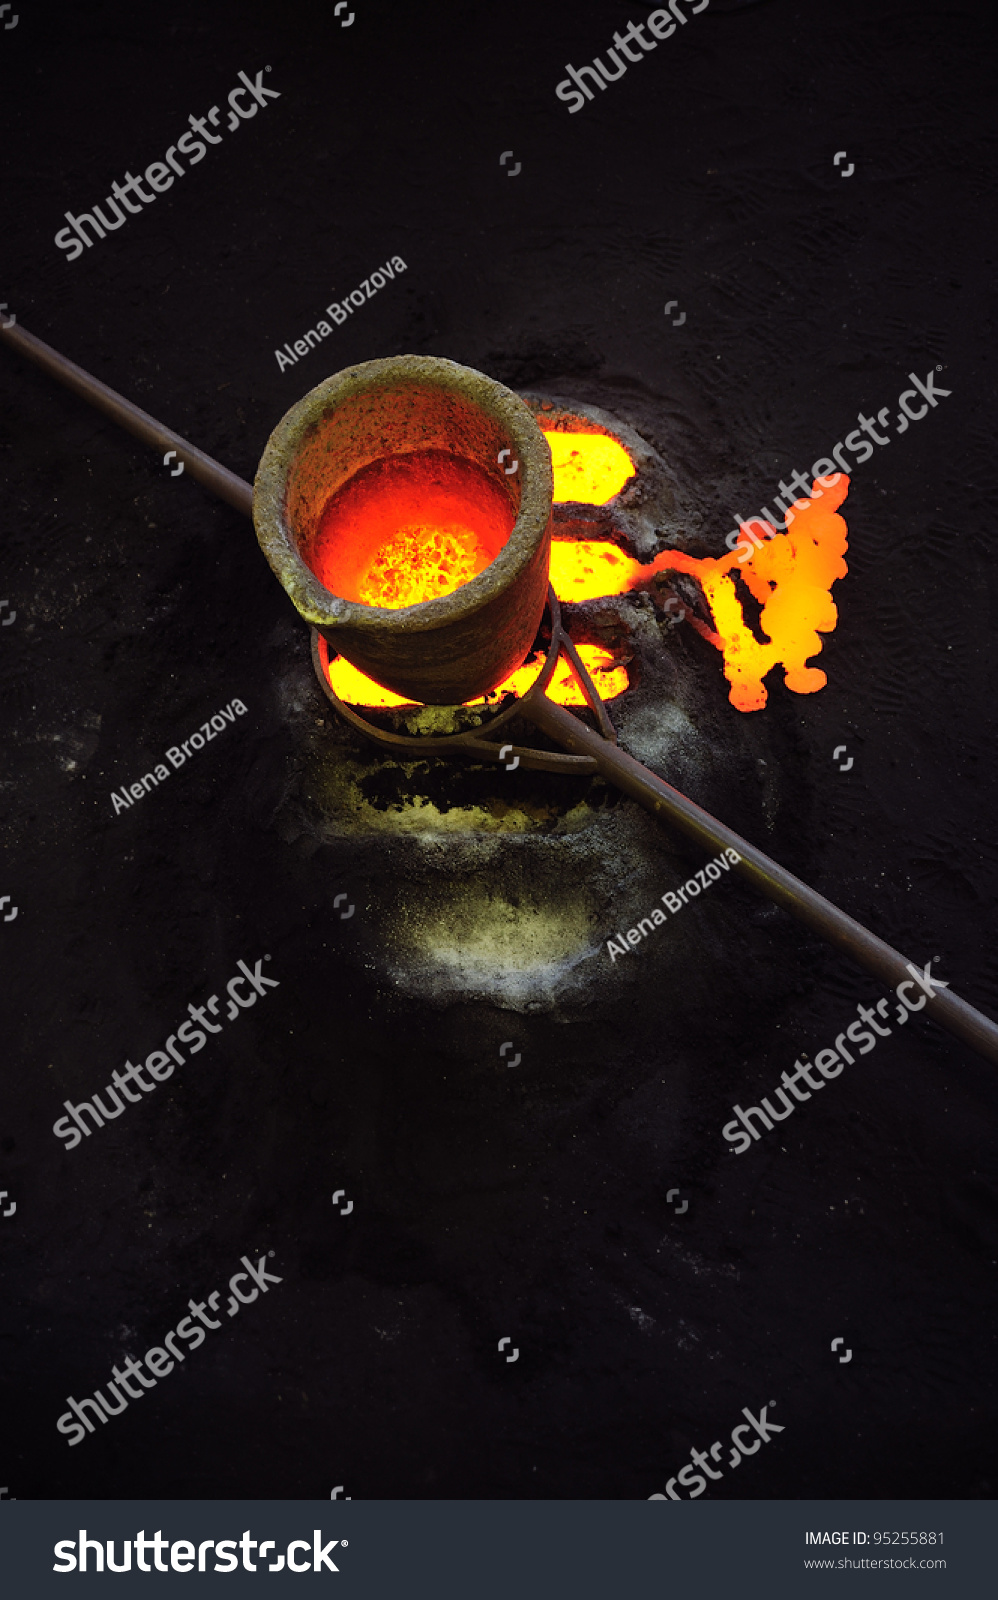 Old Encrusted Foundry Crucibles for Pouring Molten Metals |Molten Metal Crucible